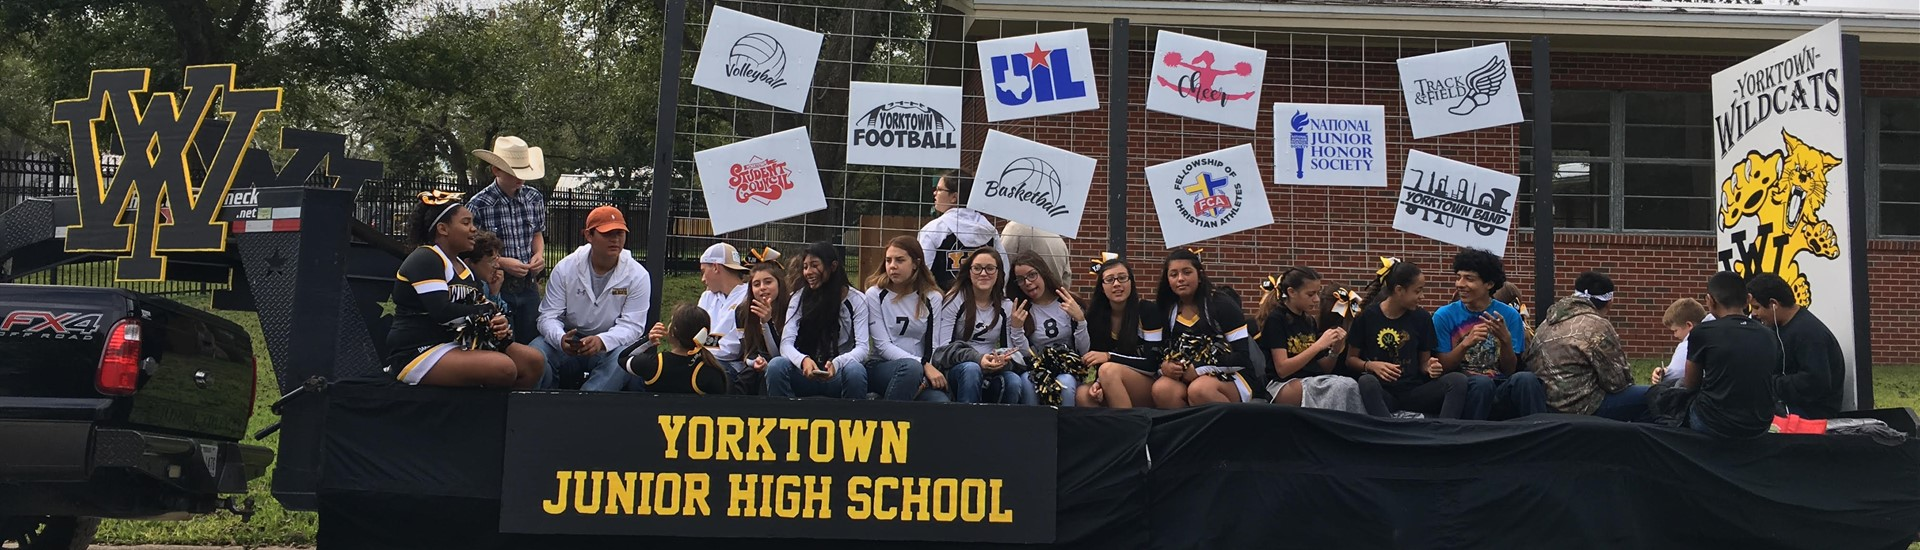 Junior High students on the 2018 Western Days parade float, displaying signs for various extracurricular activities and organizations.